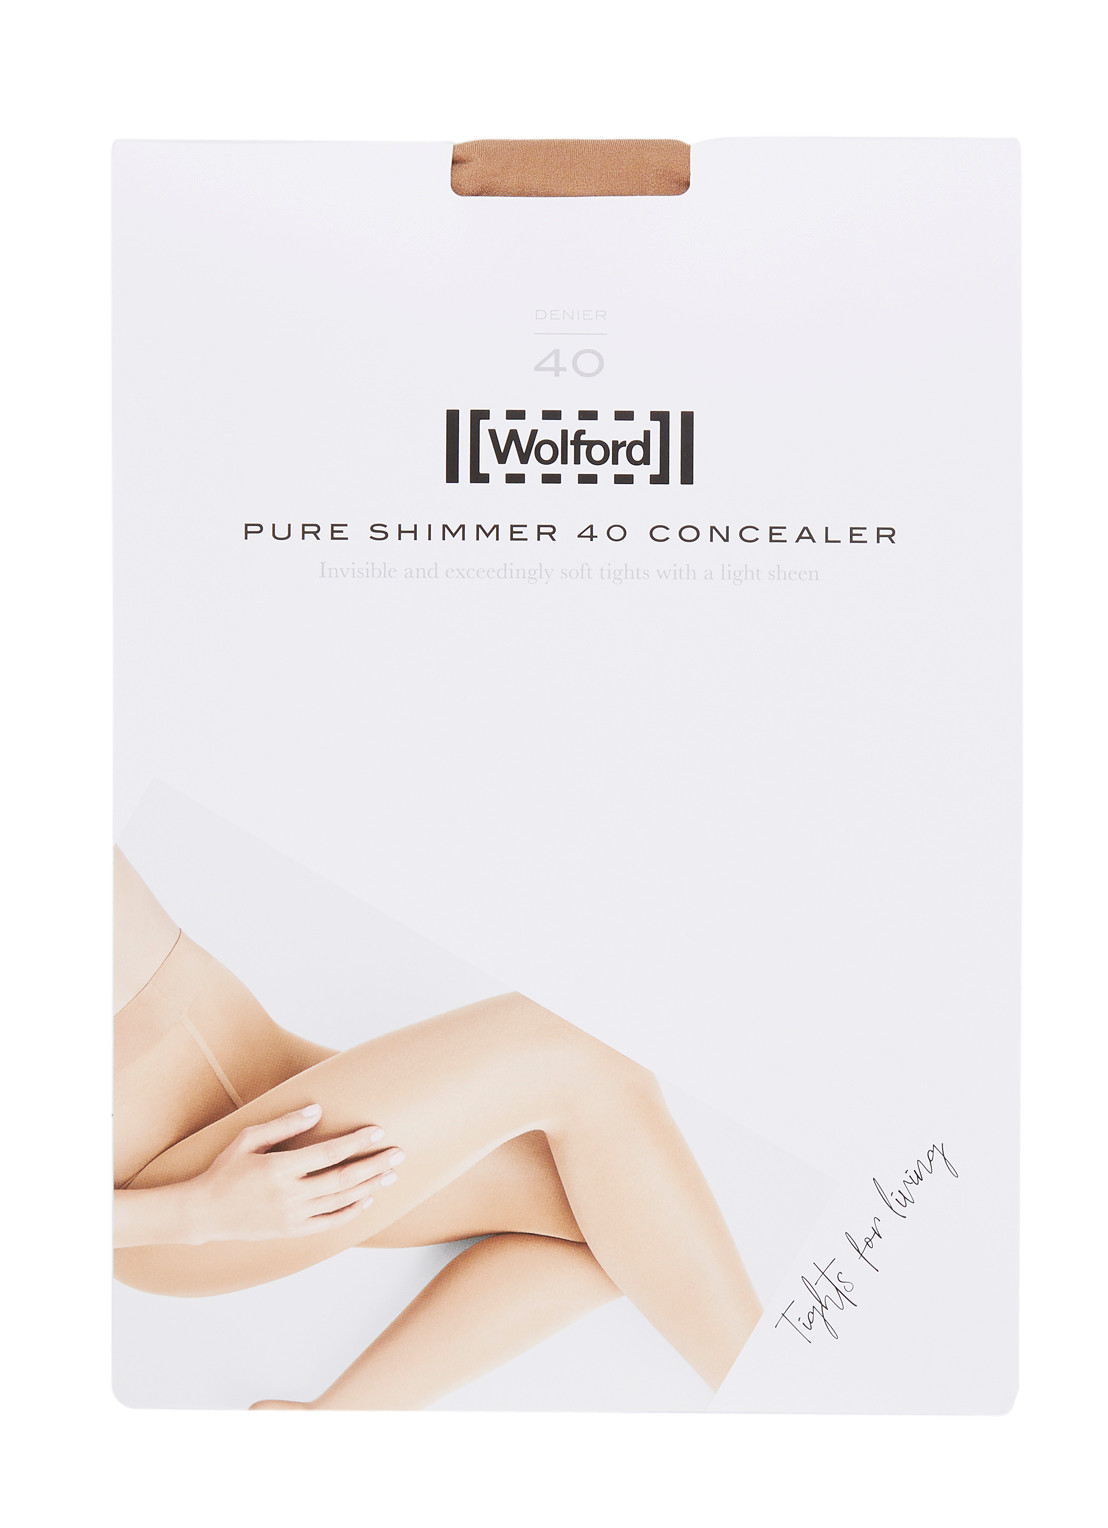 Wolford Pure Shimmer Concealer panty in 40 denier